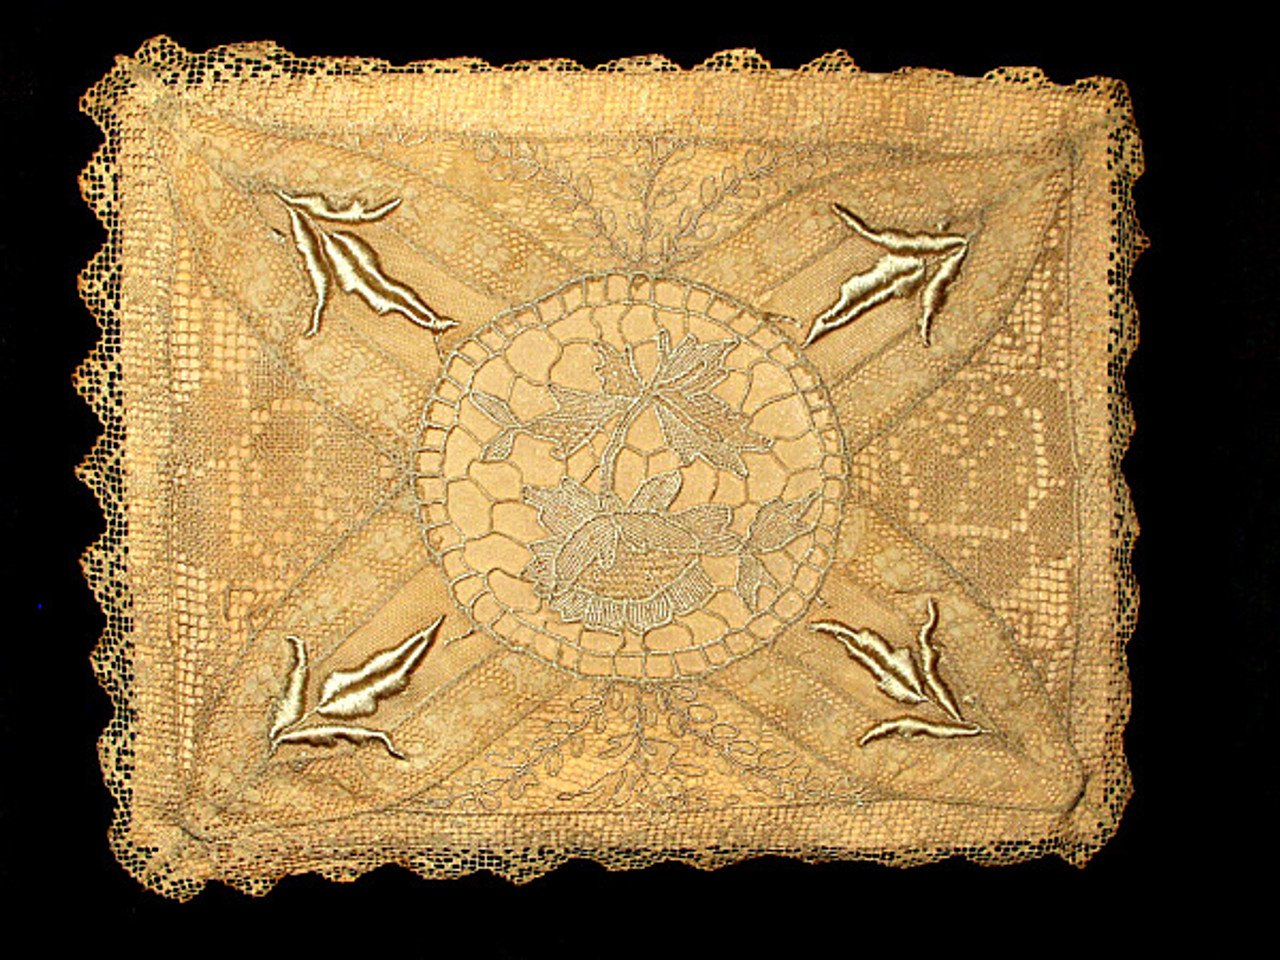 Vintage 1920s Silk Lingerie Handkerchief  Hanky Case Mixed Lace Cover